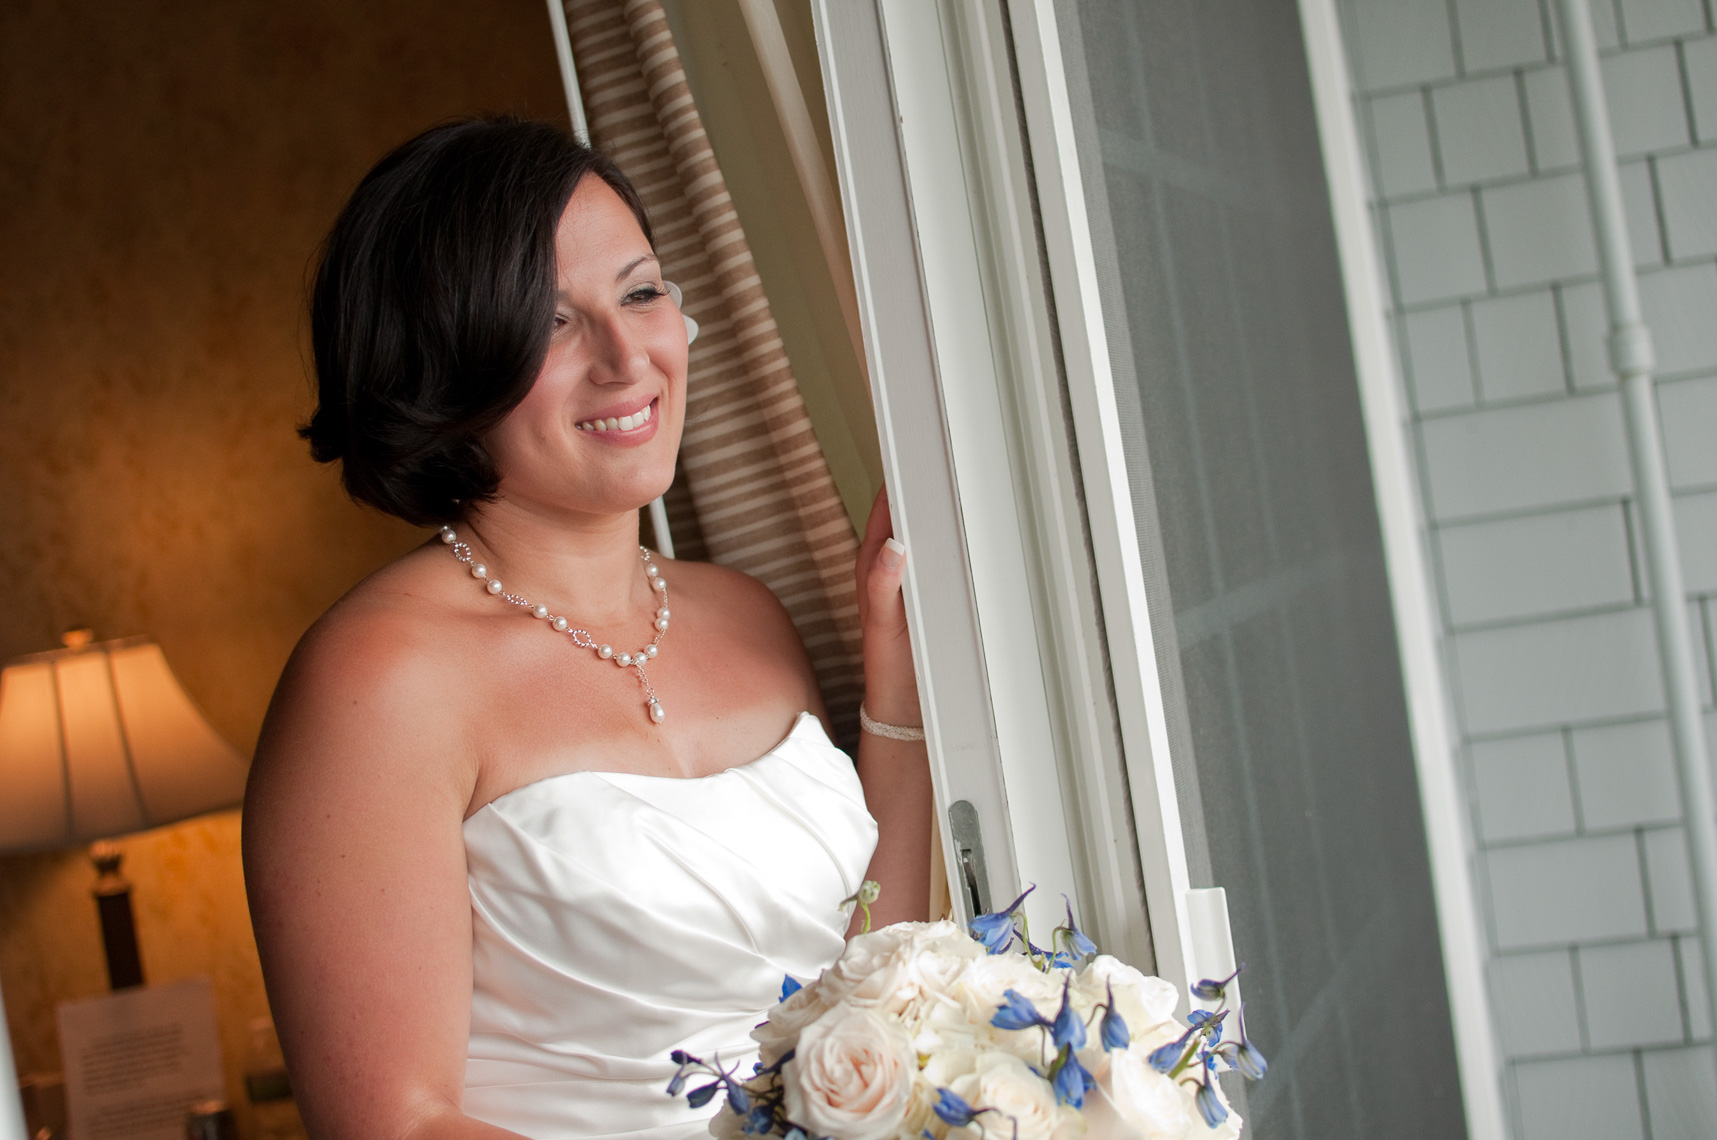 Thomas_Mindy_Wedding_096.JPG